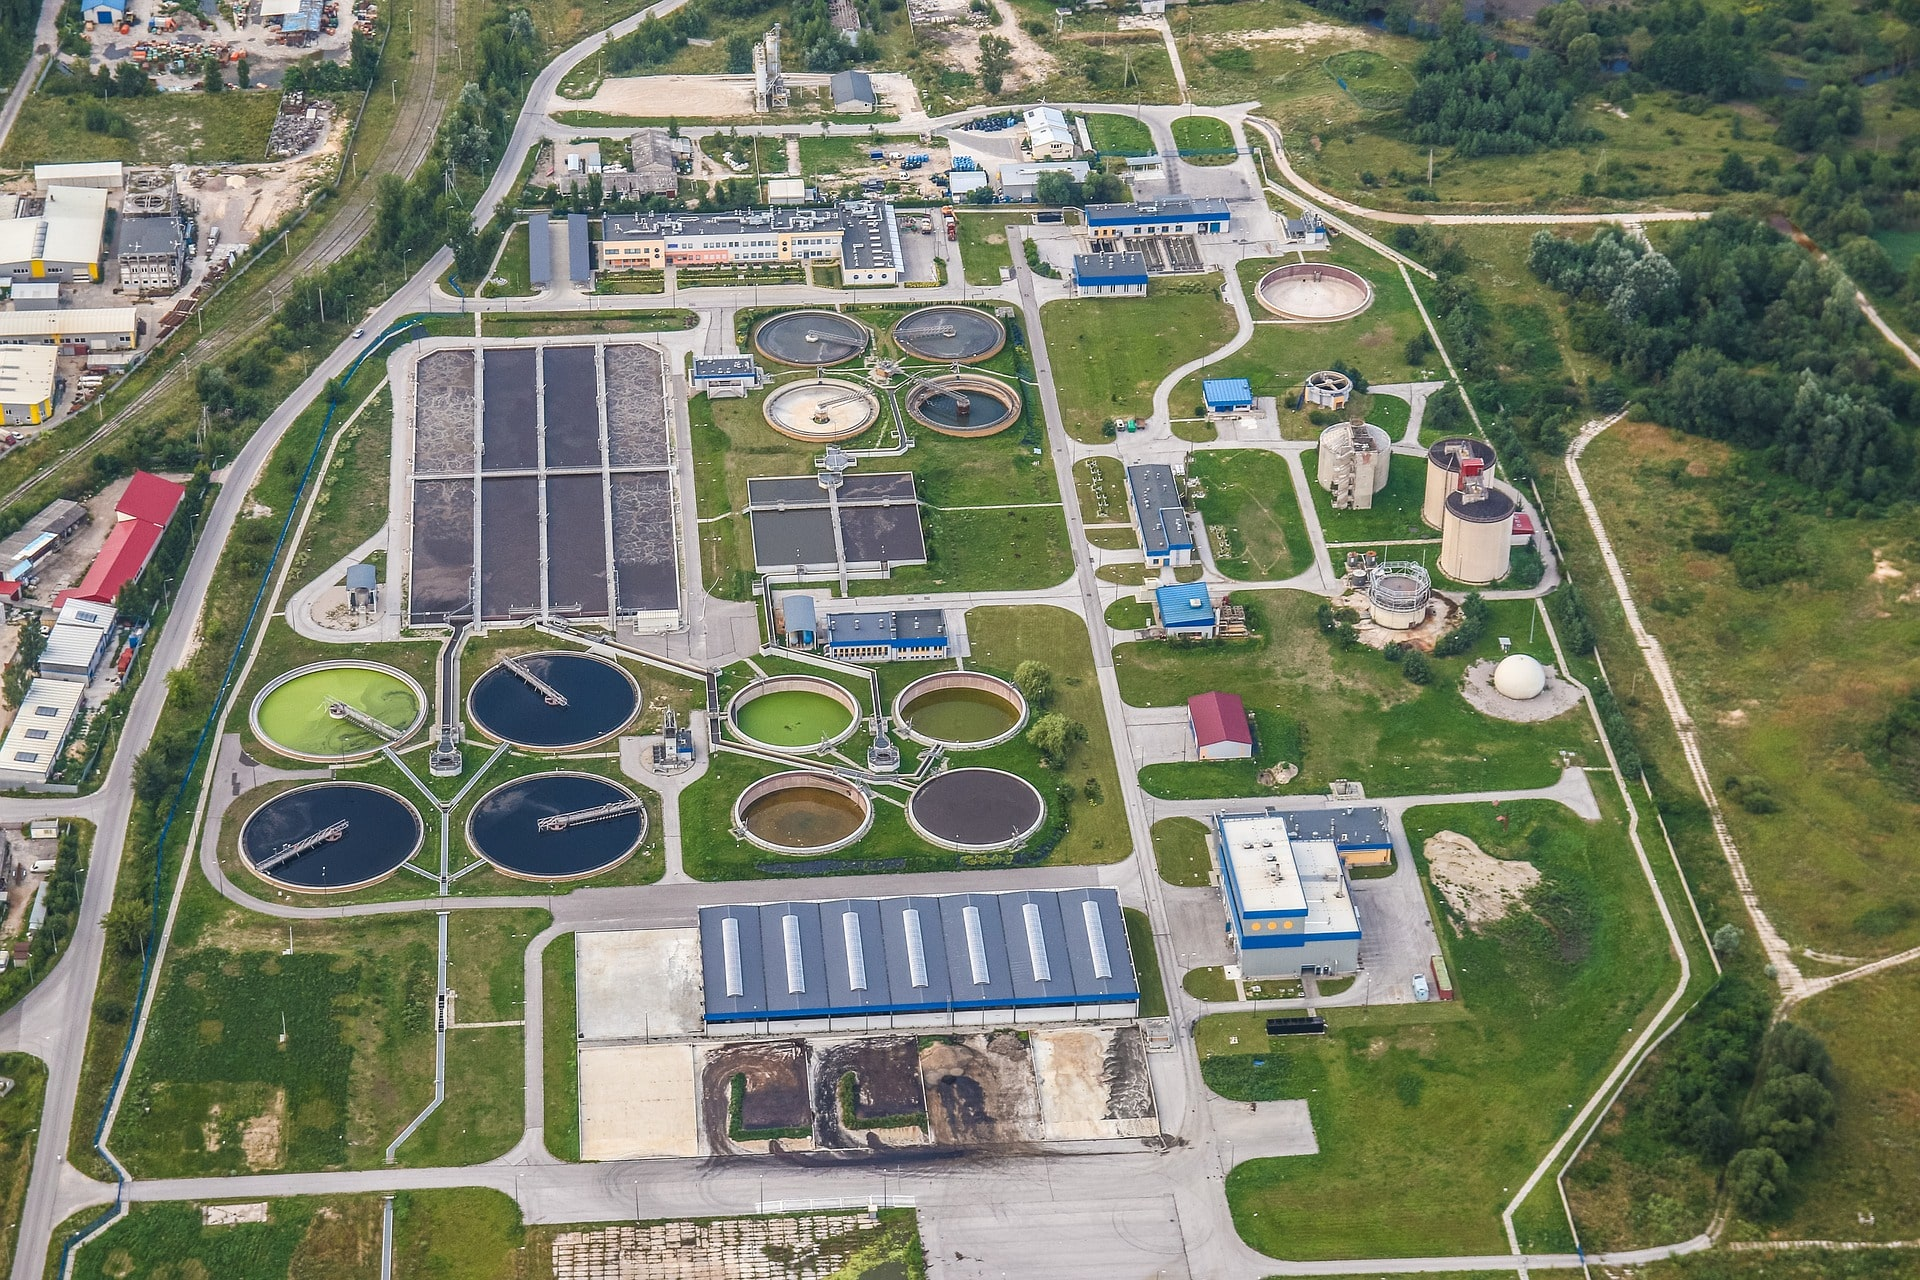 treatment-plant-wastewater-2826988_1920-min